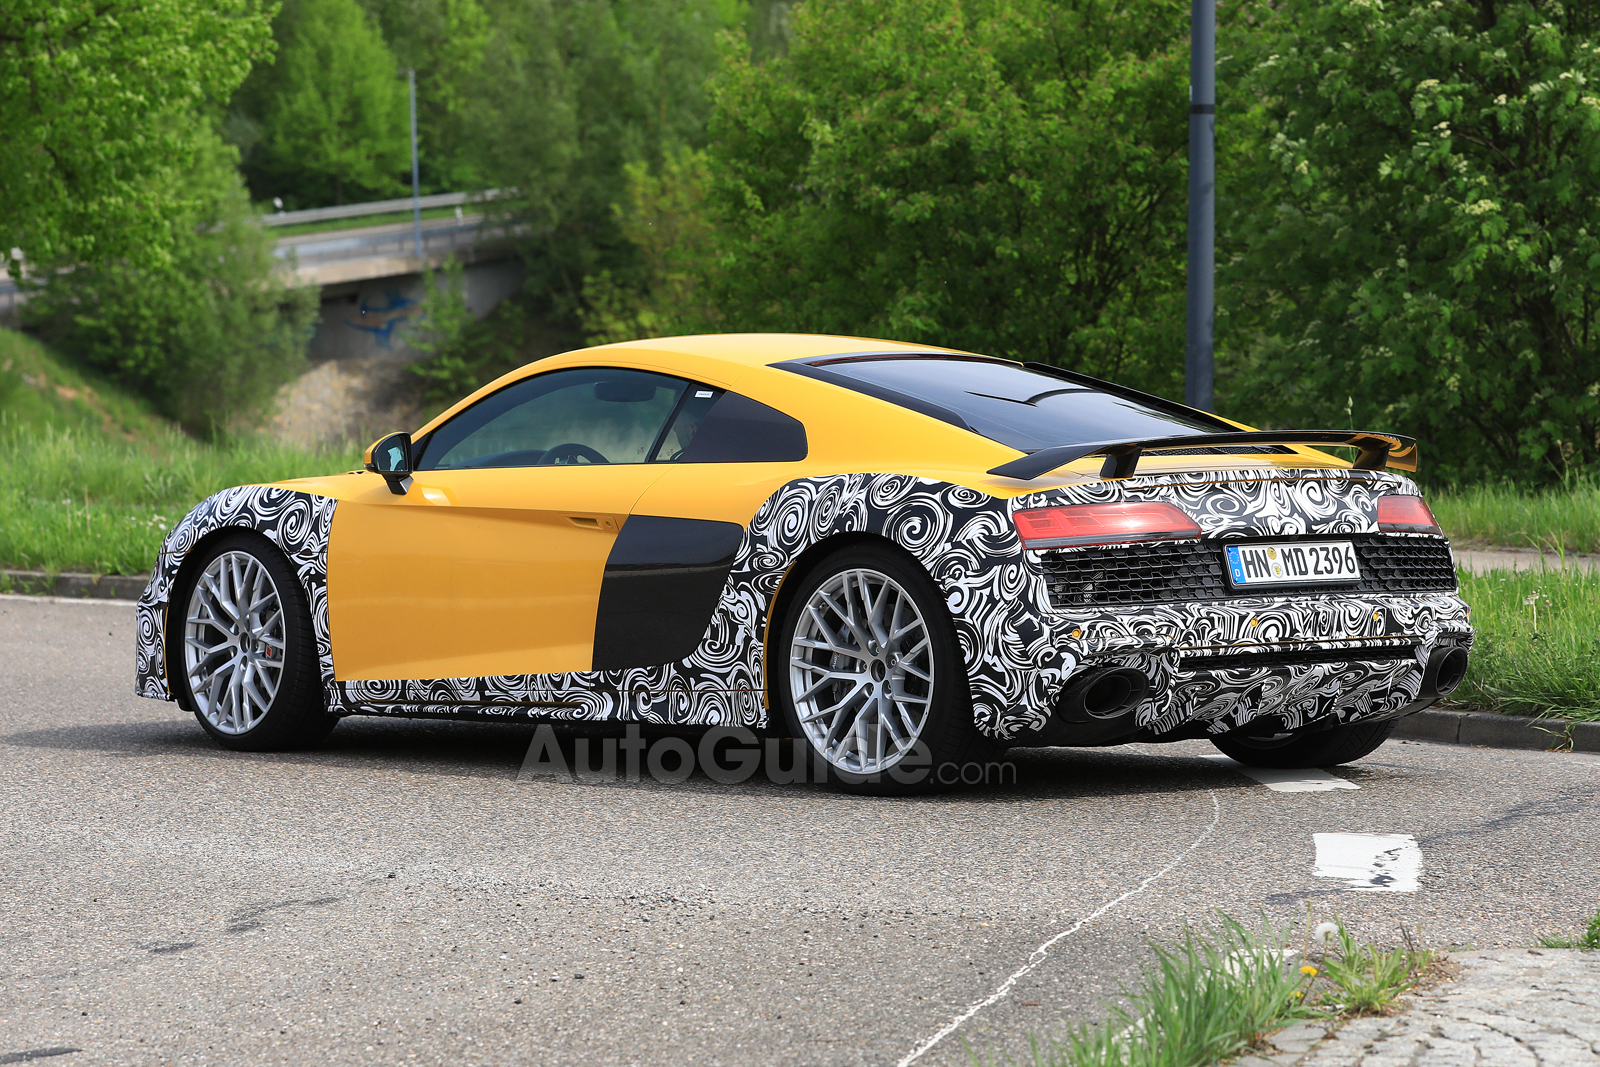 2020 Audi R8 Spied Looking Yellow and Camouflaged » AutoGuide.com News